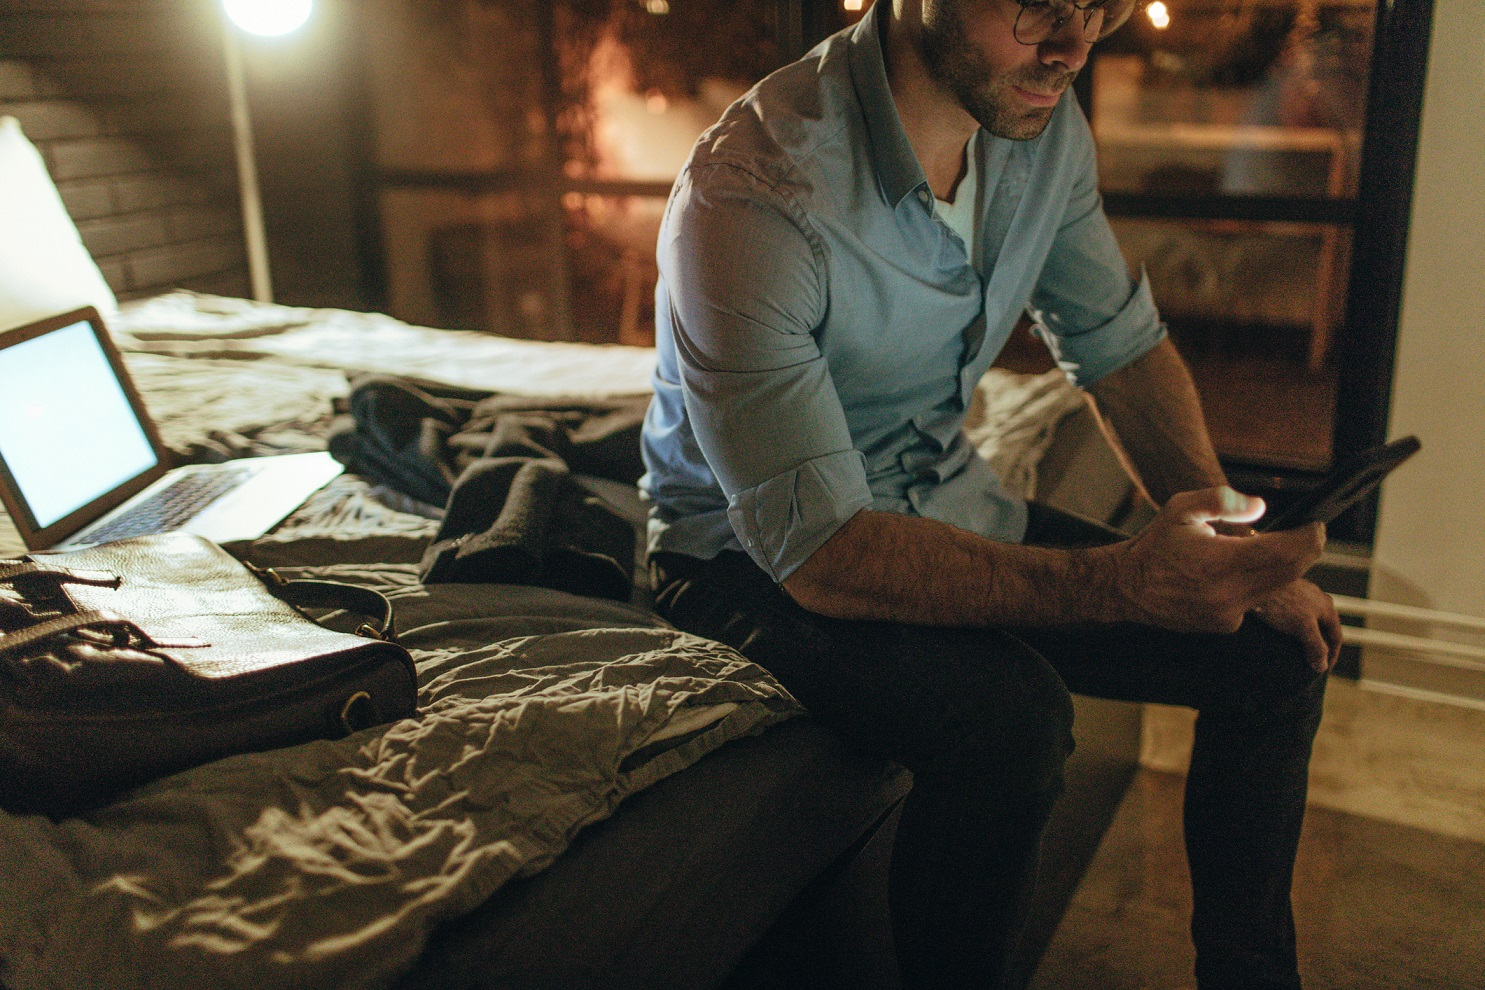 Young man working from a hotel room at night